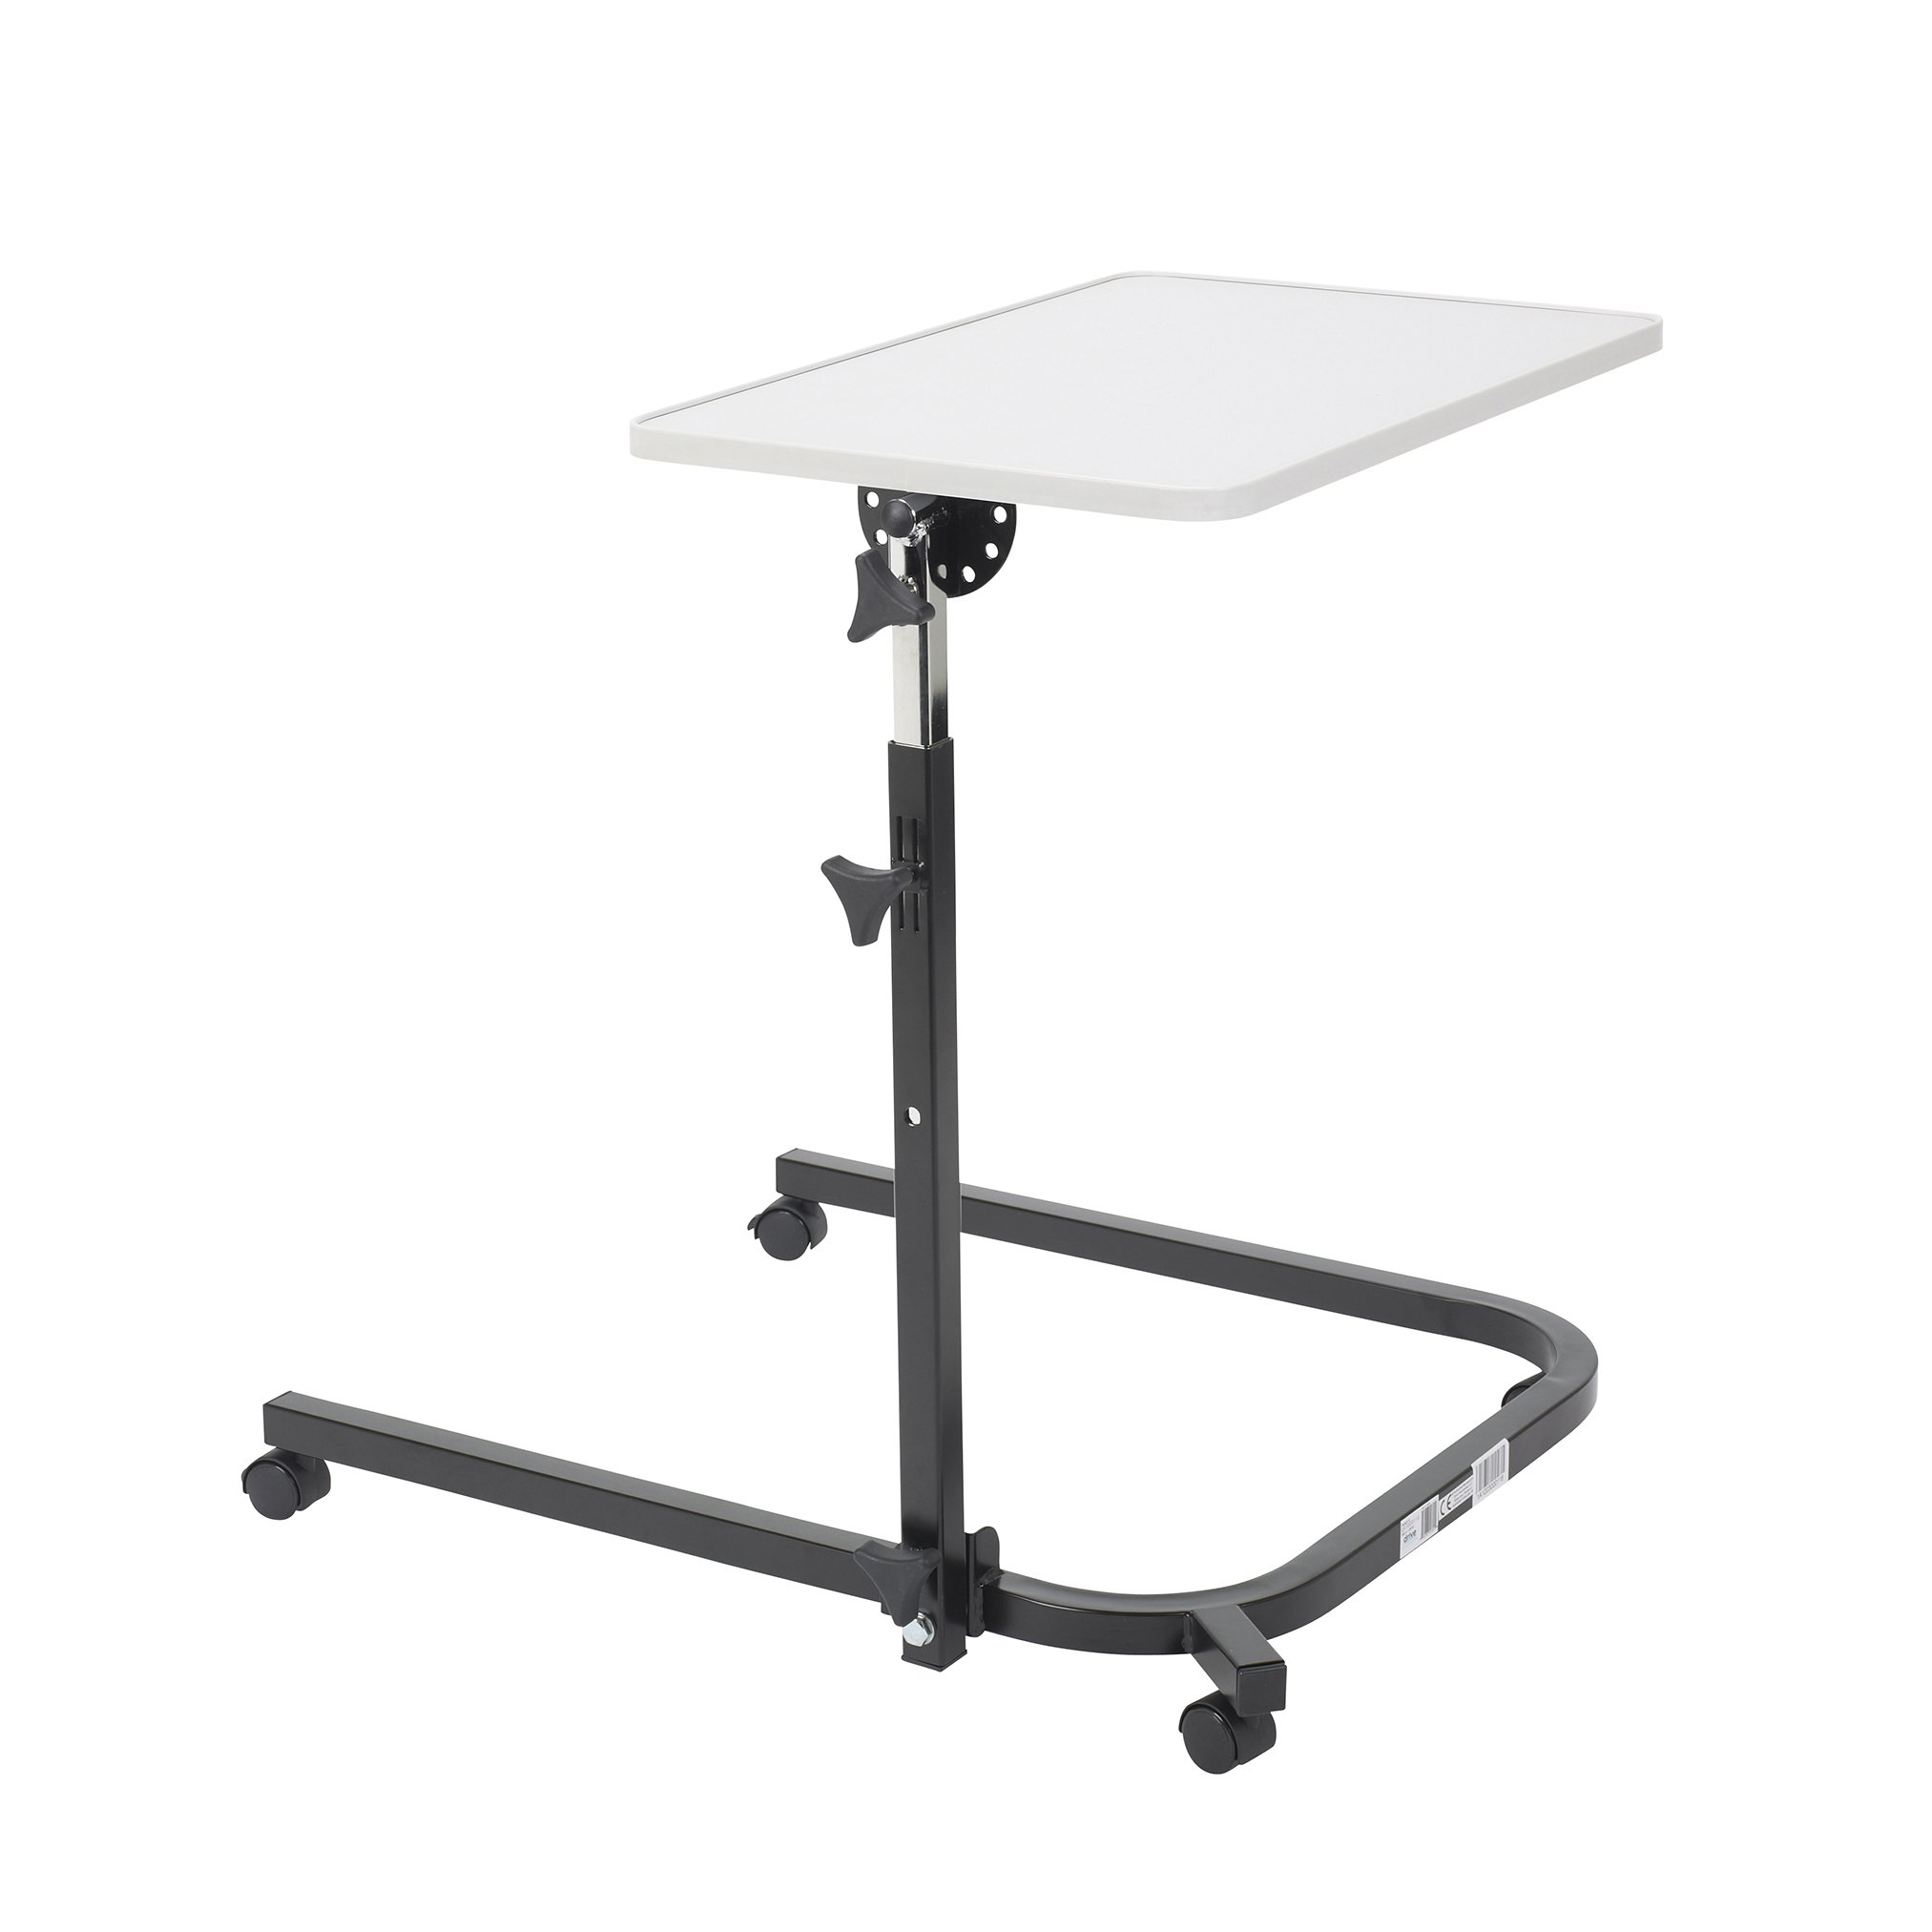 Drive Medical Pivot and Tilt Adjustable Overbed Table by Drive Medical